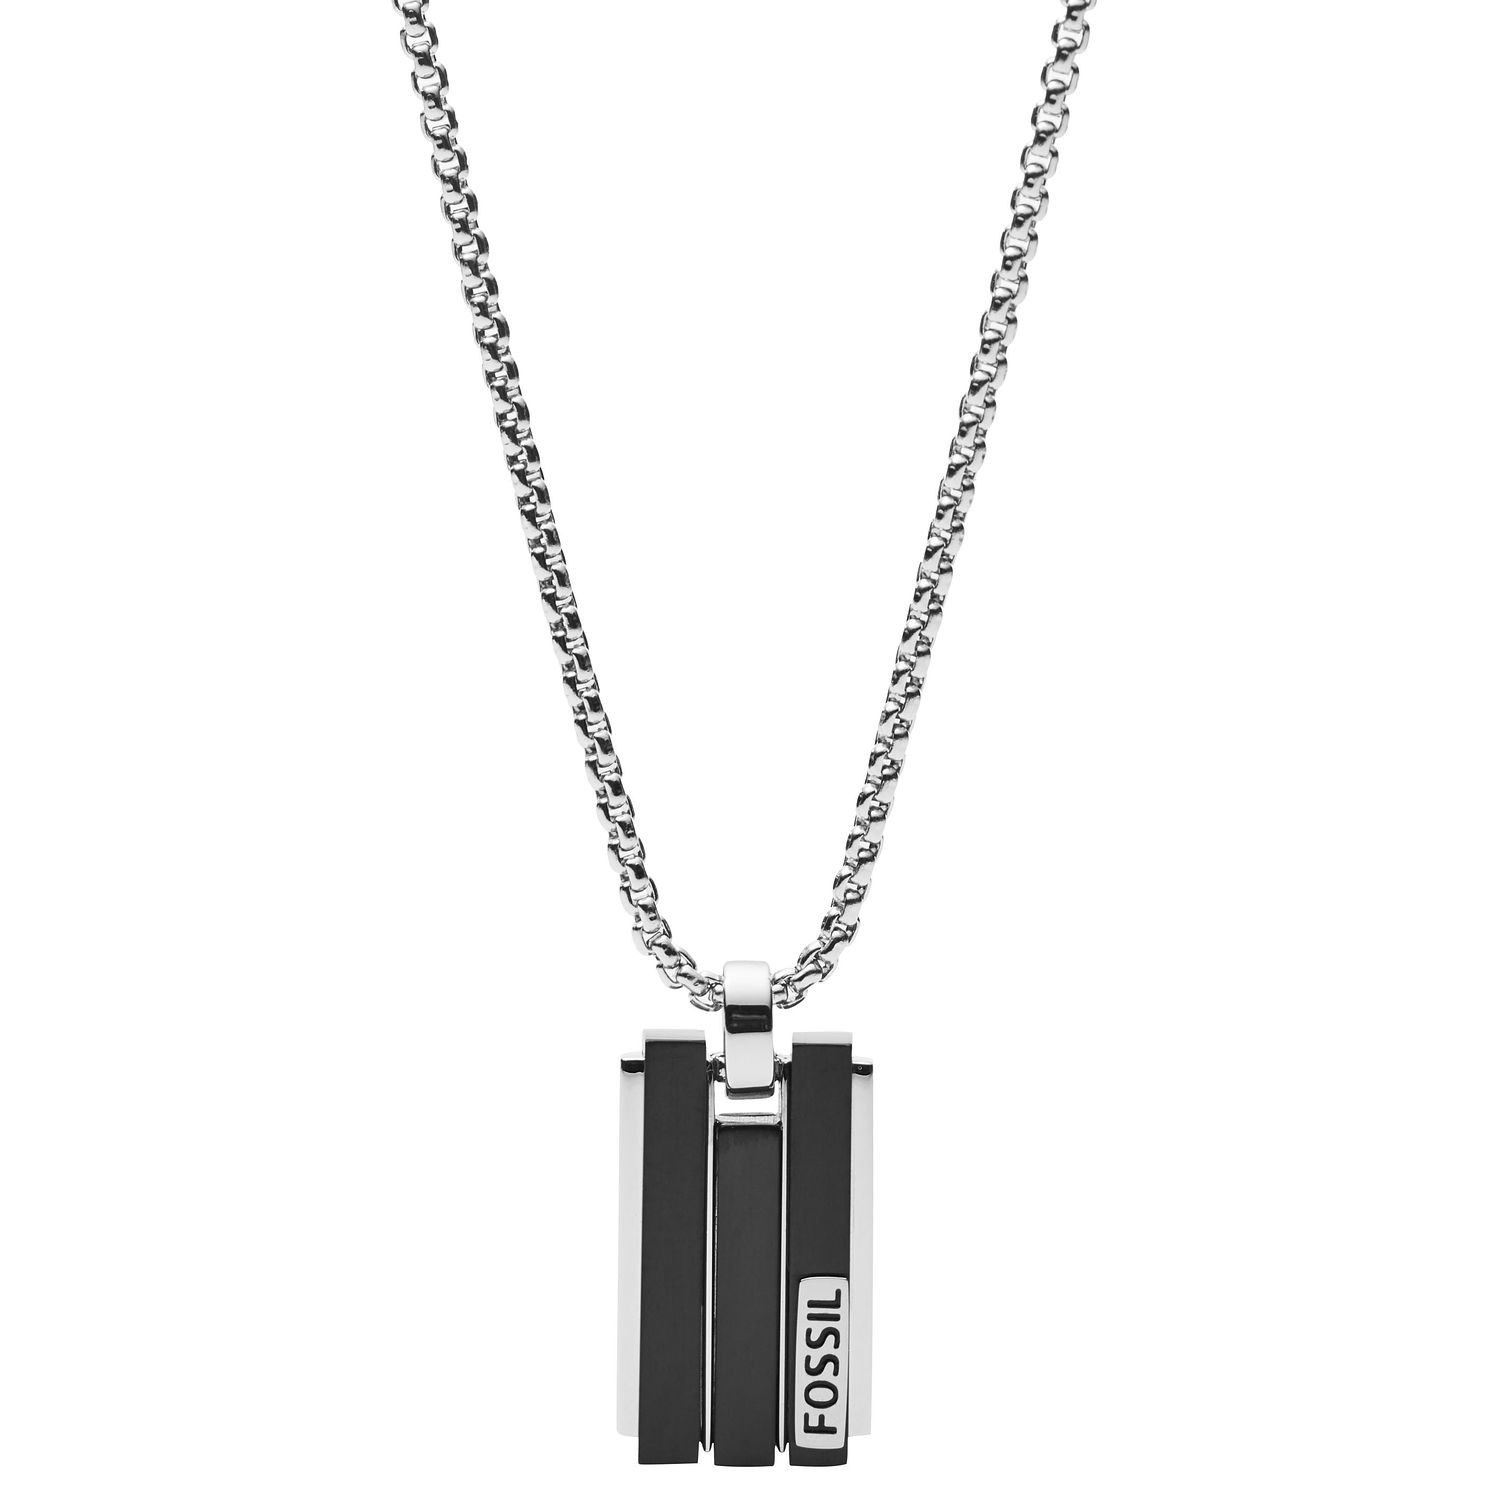 Fossil Men's Stainless Steel Black Dog Tag Necklace - Product number 2358573